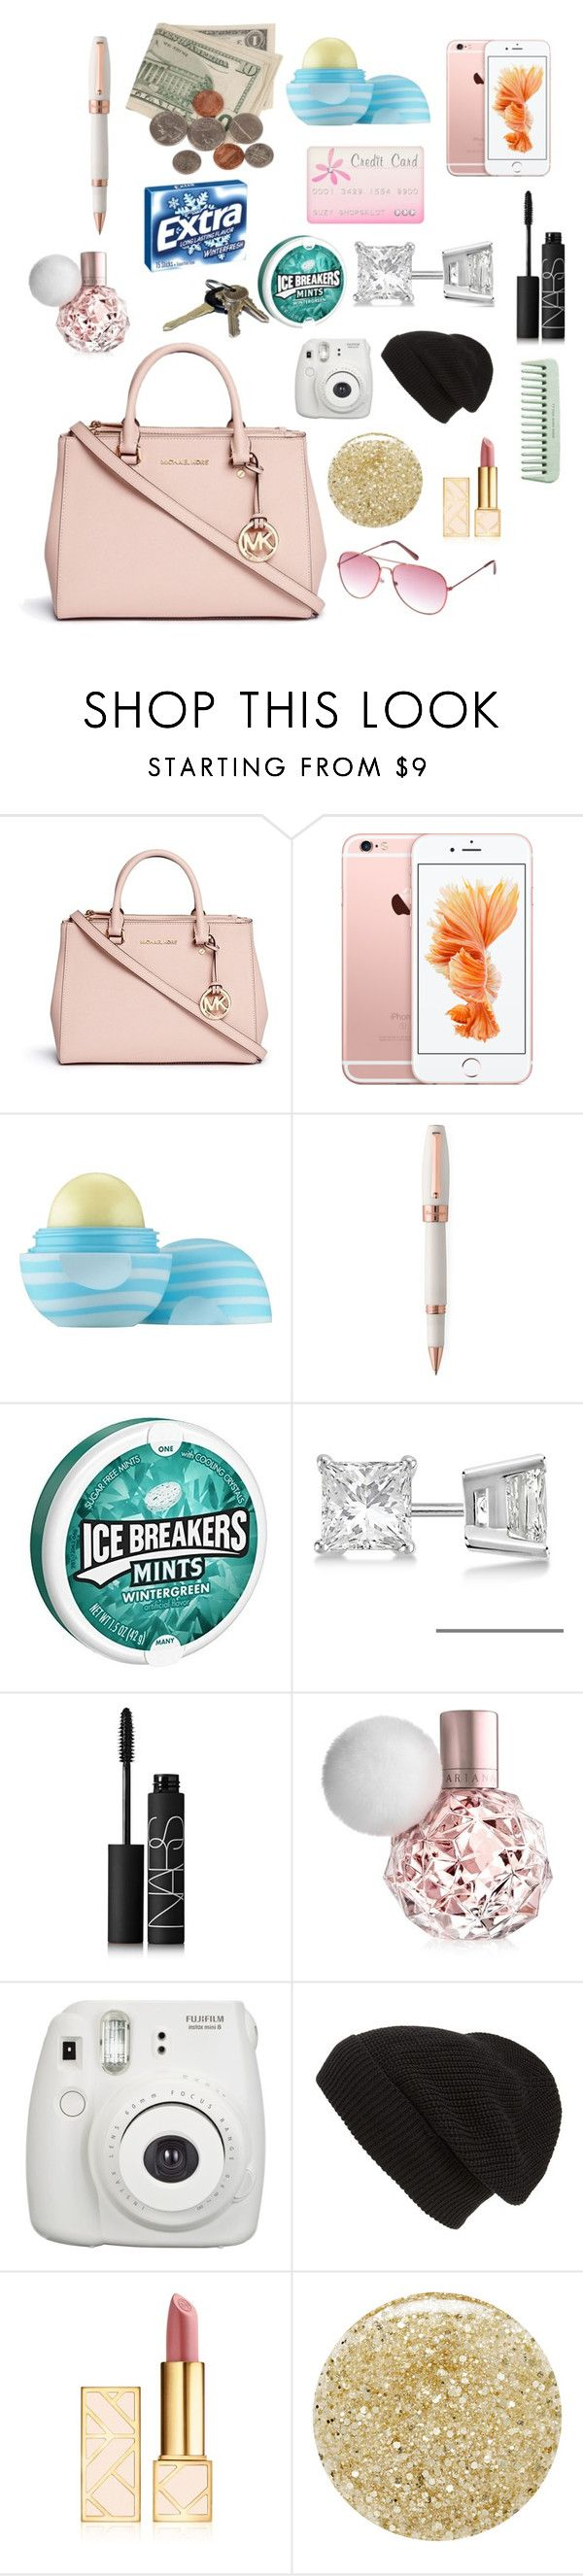 """What's in my purse"" by kroyals179 ❤ liked on Polyvore featuring beauty, Michael Kors, Eos, Montegrappa, Allurez, NARS Cosmetics, Phase 3, Tory Burch, Lancôme and Charlotte Russe"